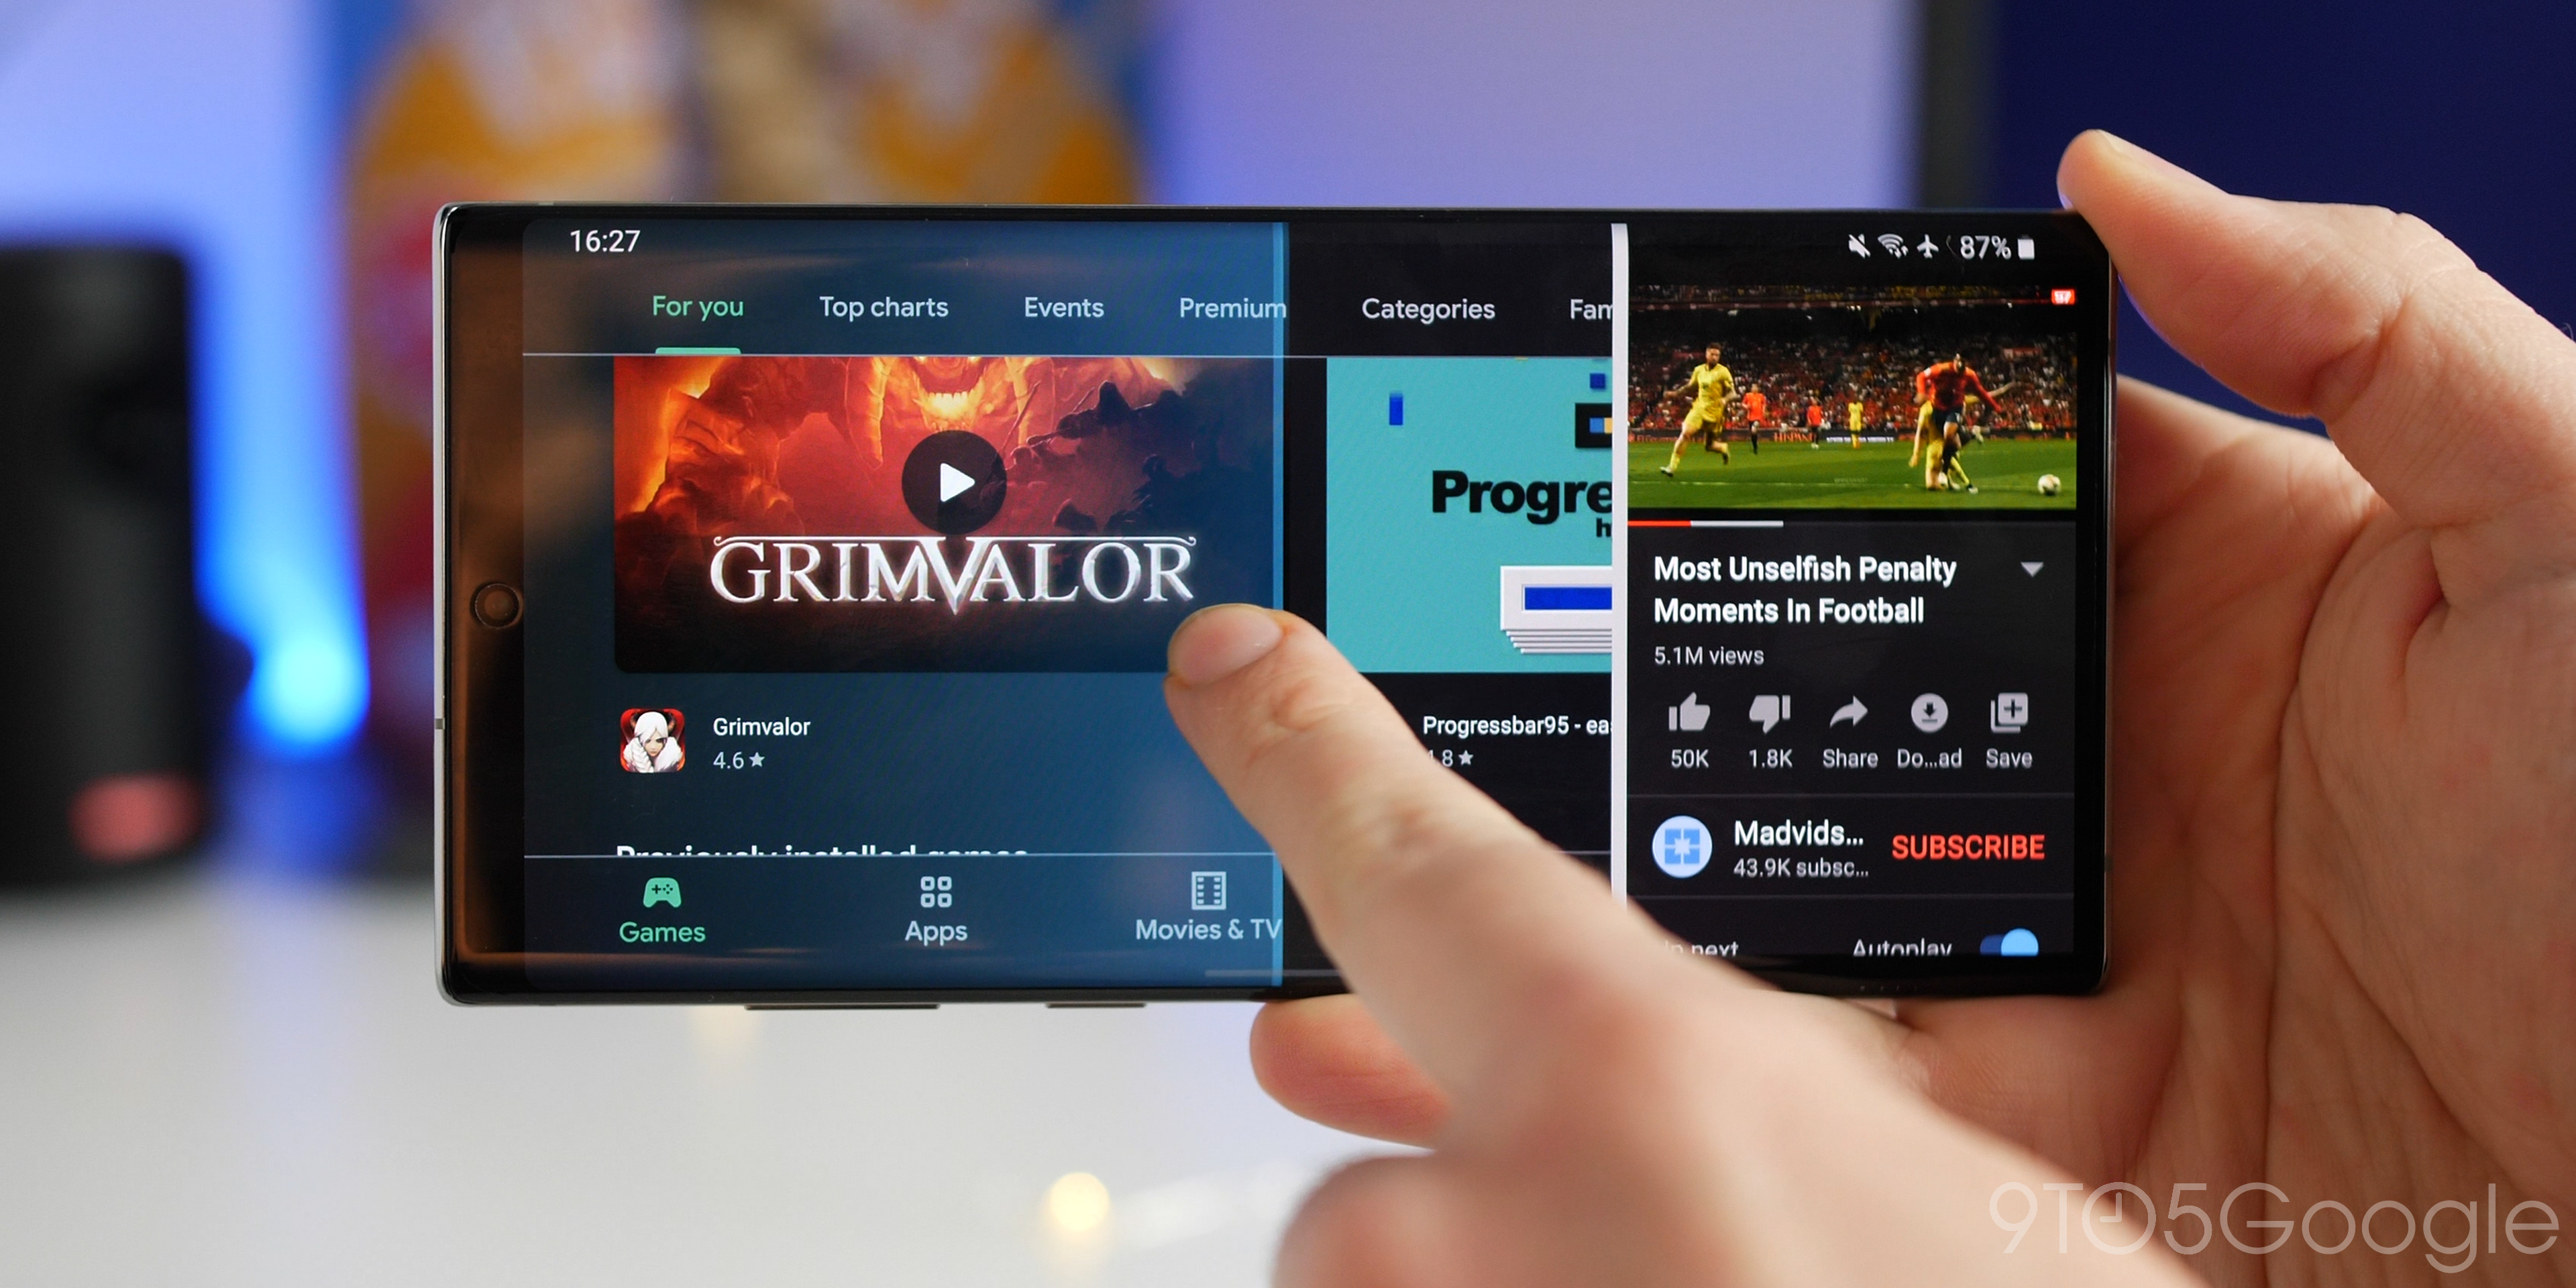 How to enable split screen multitasking in Android 10